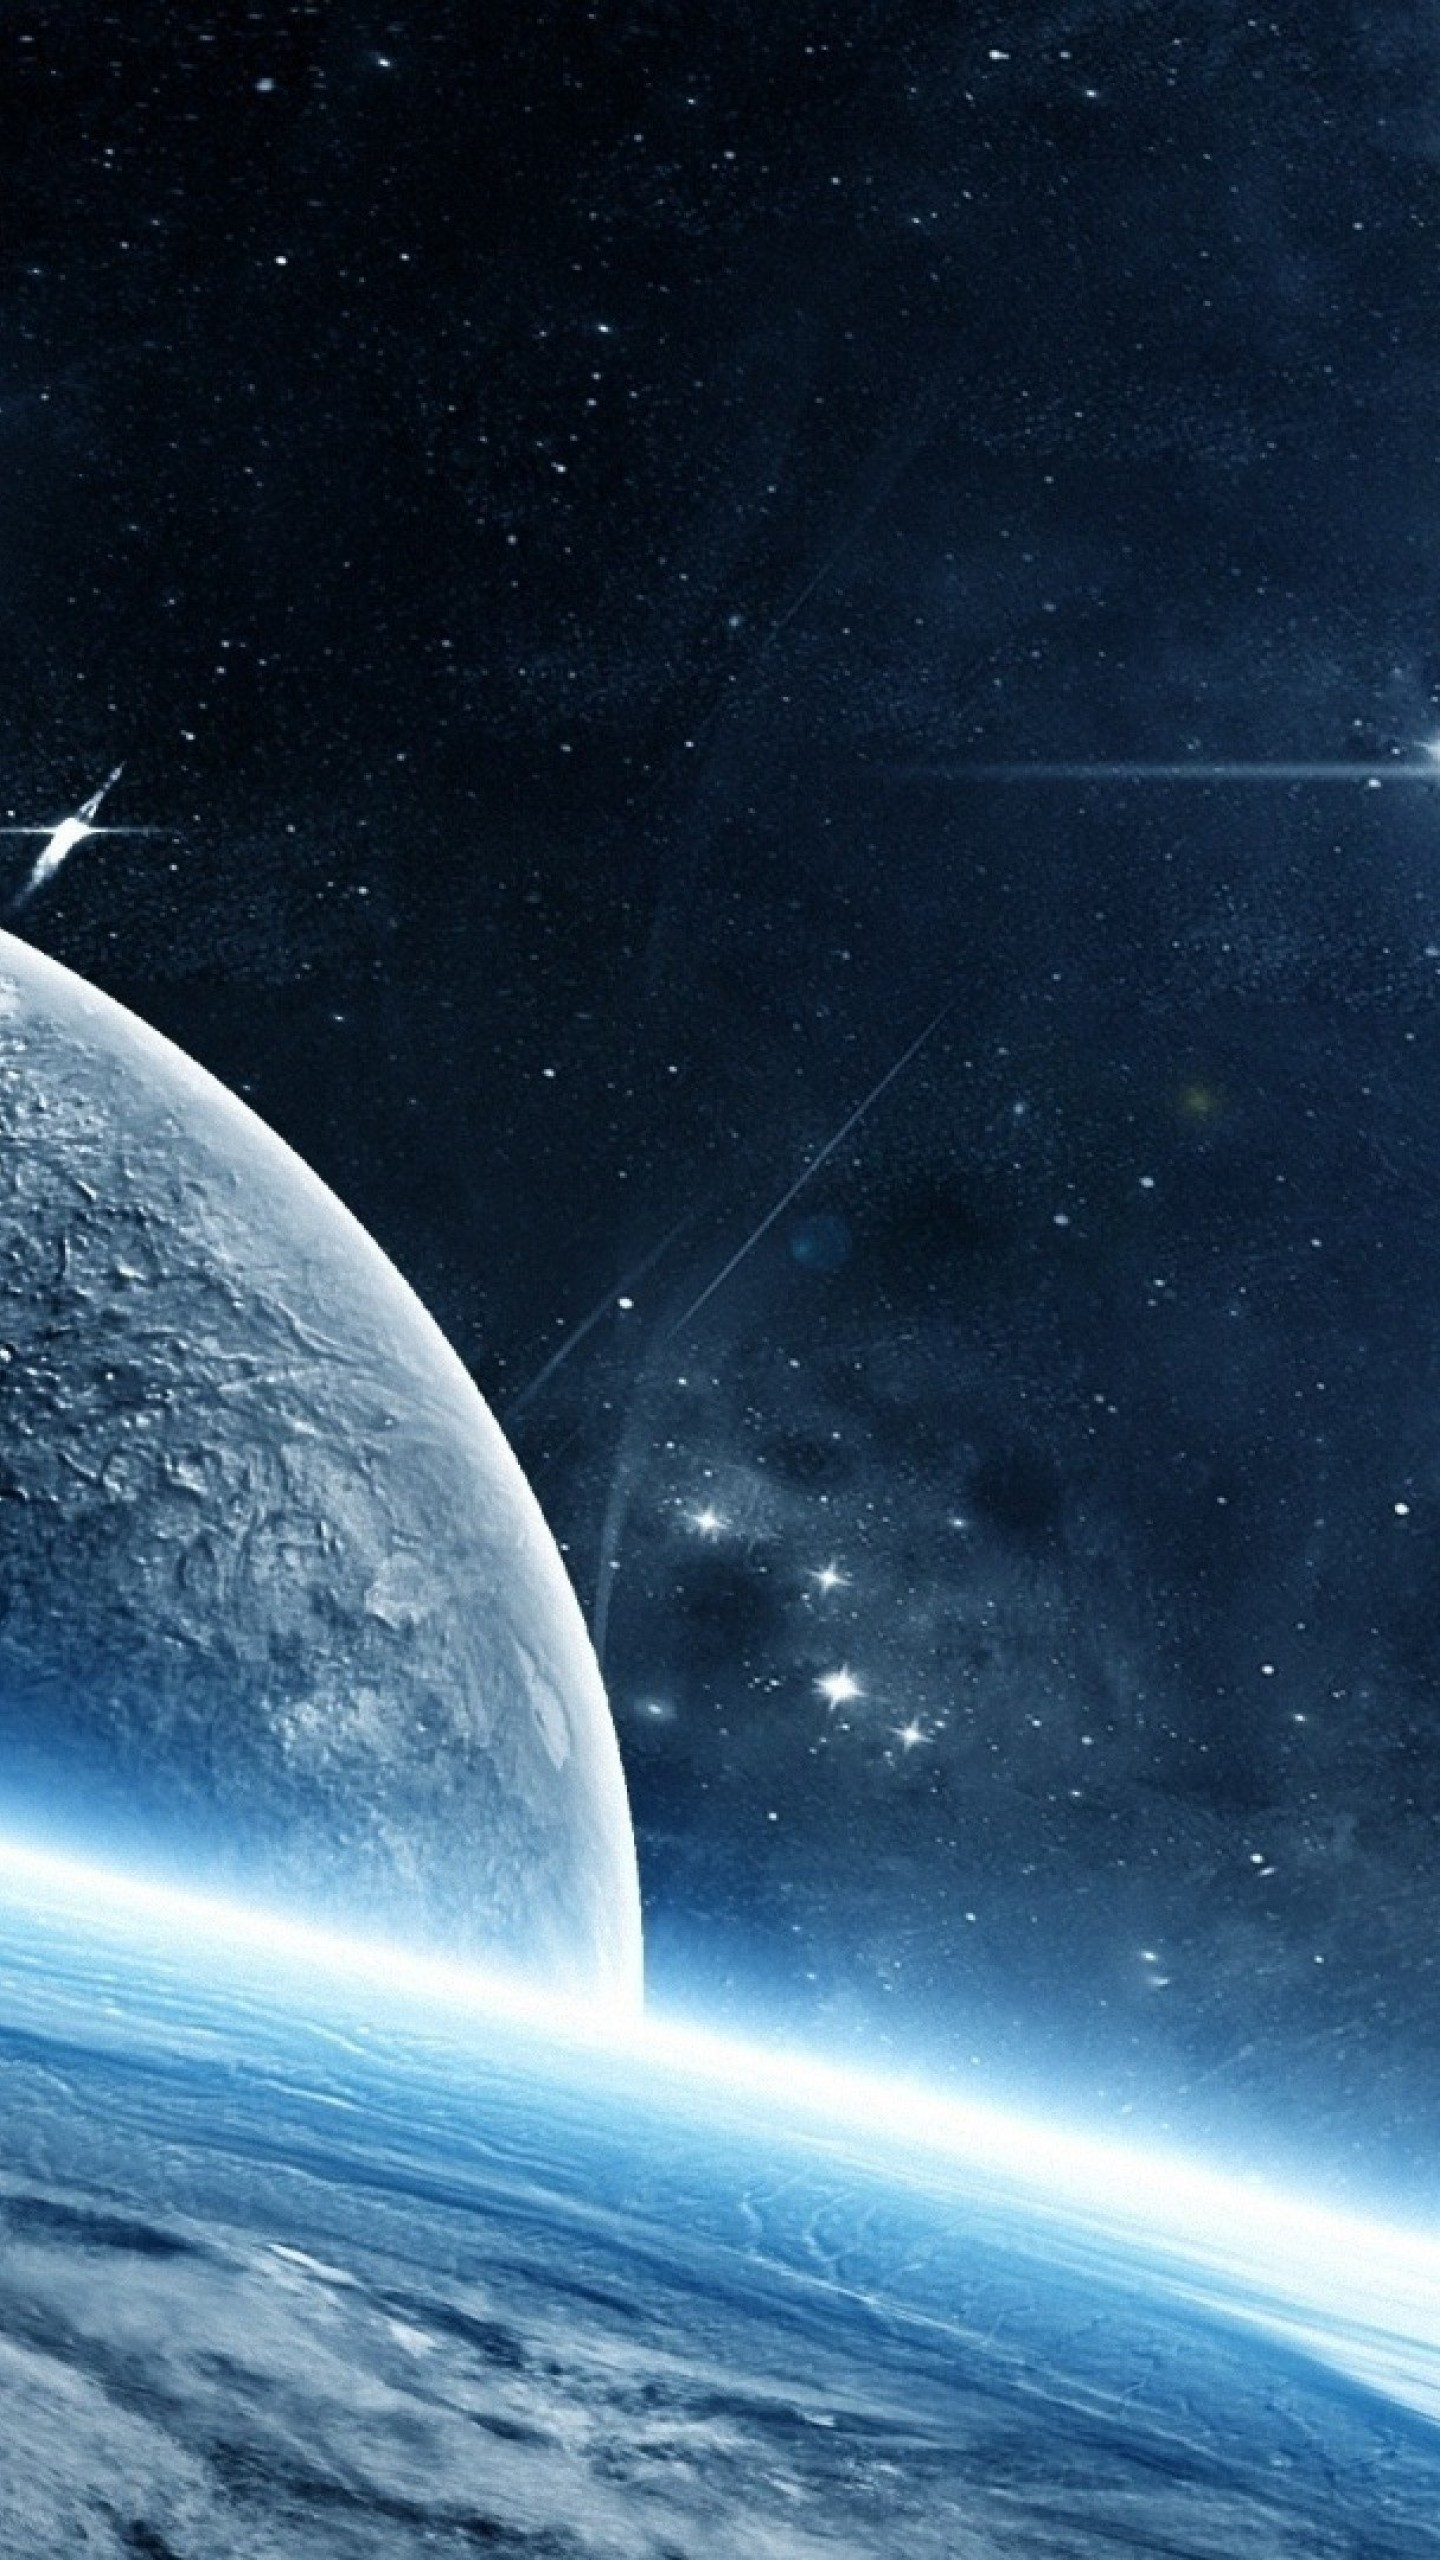 4k Galaxy Wallpapers High Quality Download Free